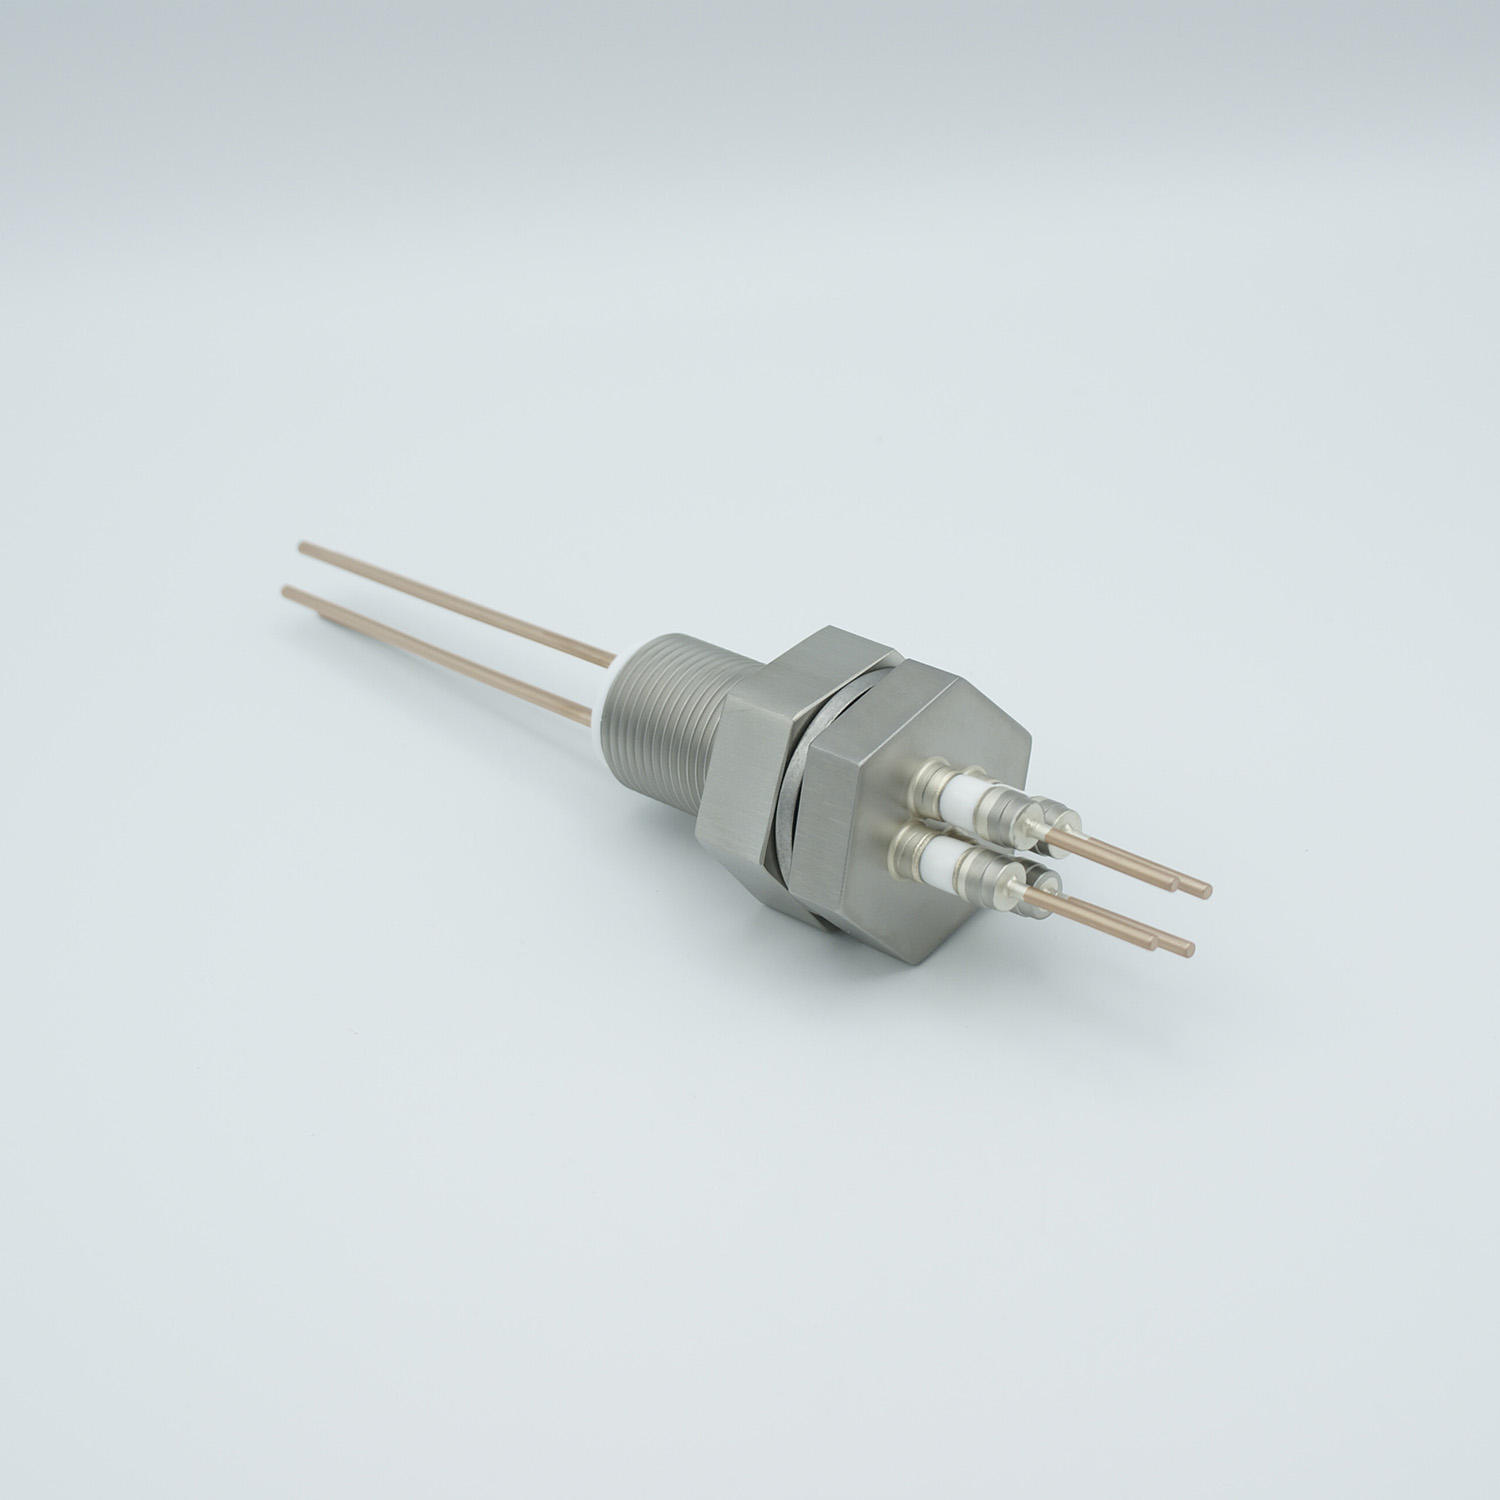 4 pins feedthrough 2000Volt / 30 Amp. Copper conductor, base plate fitting